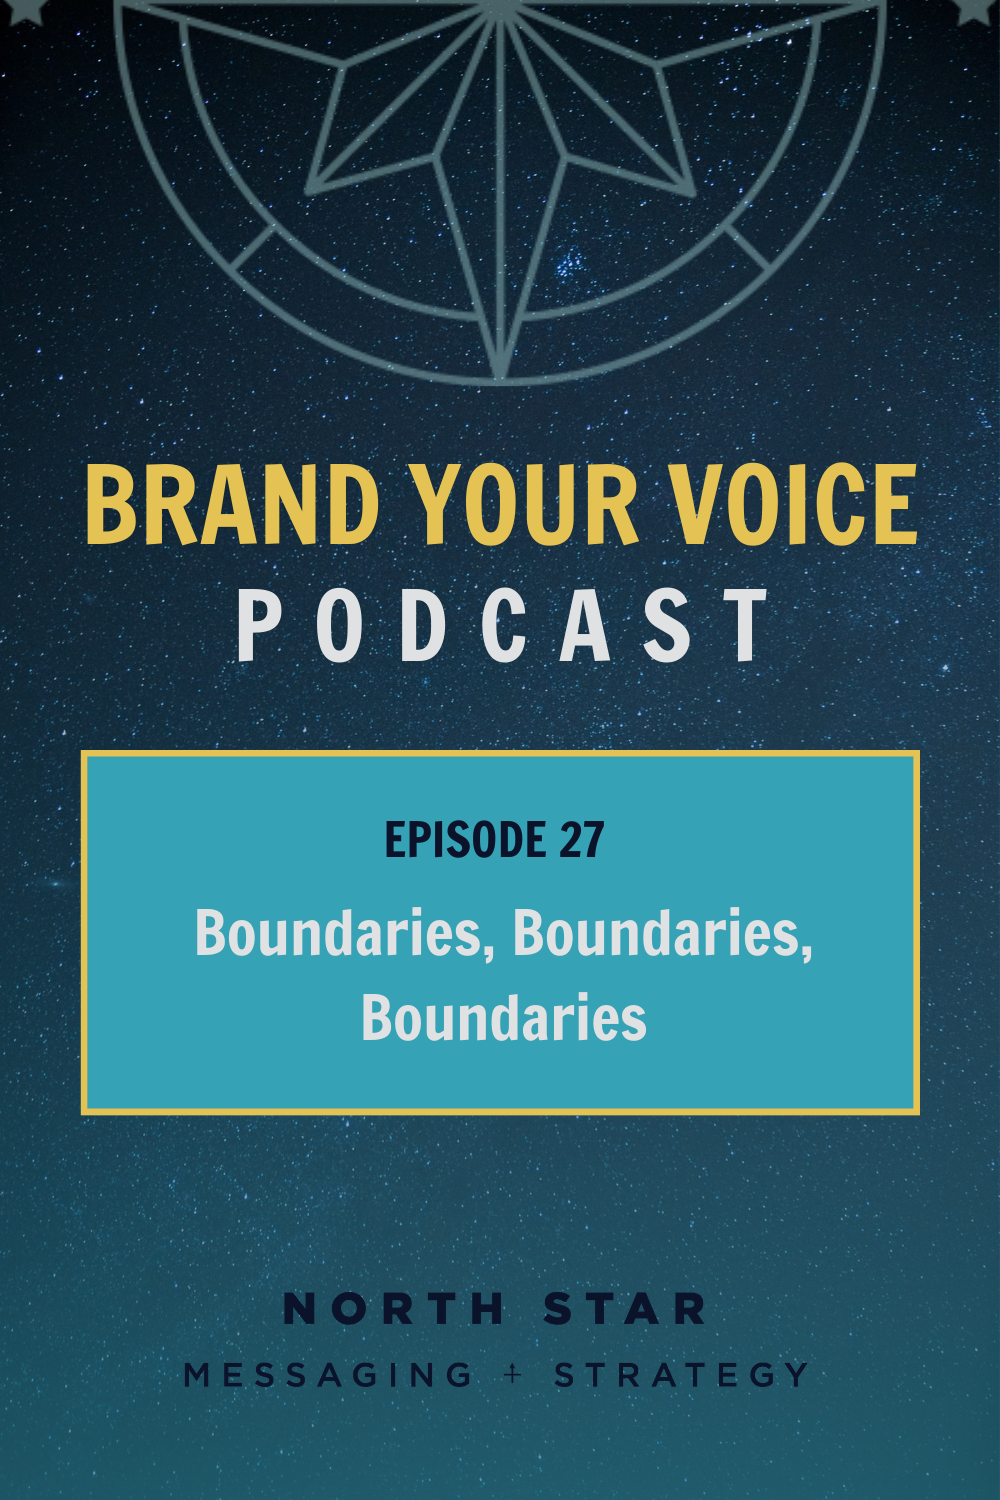 EPISODE 27: Boundaries, Boundaries, Boundaries